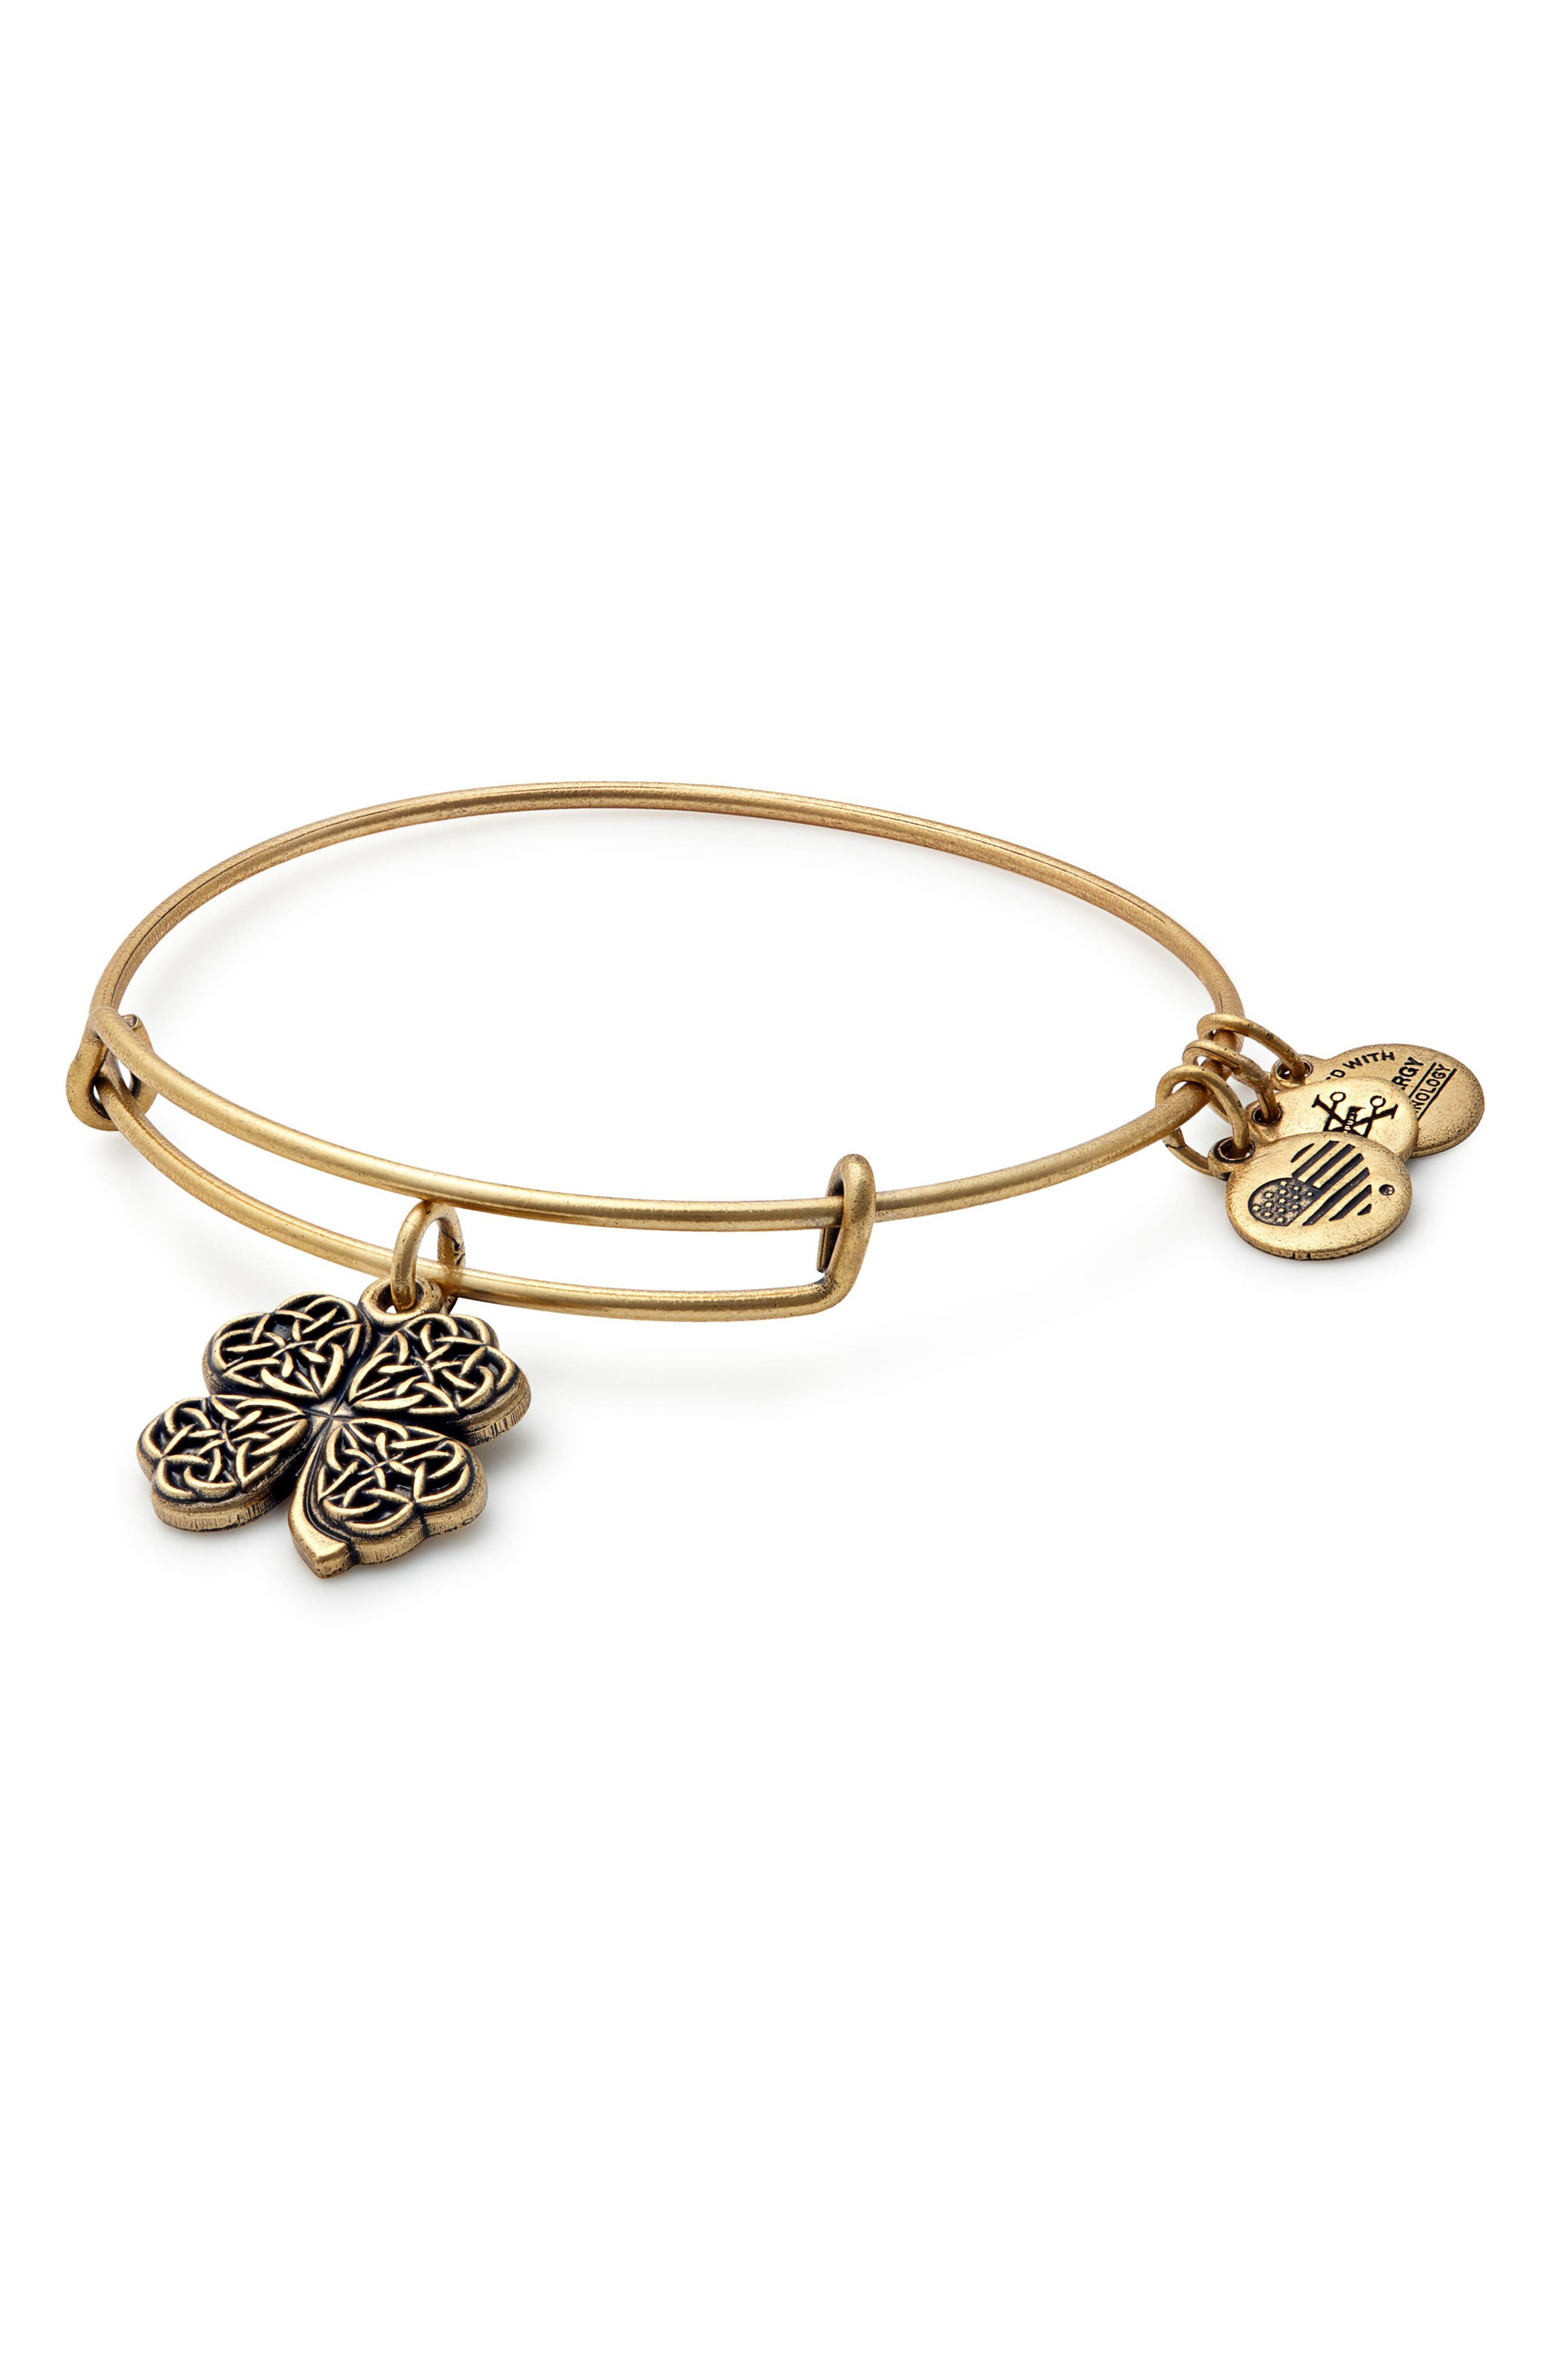 Alternate Image 1 Selected - Alex and Ani Four-Leaf Clover Adjustable Wire Bangle (Nordstrom Exclusive)